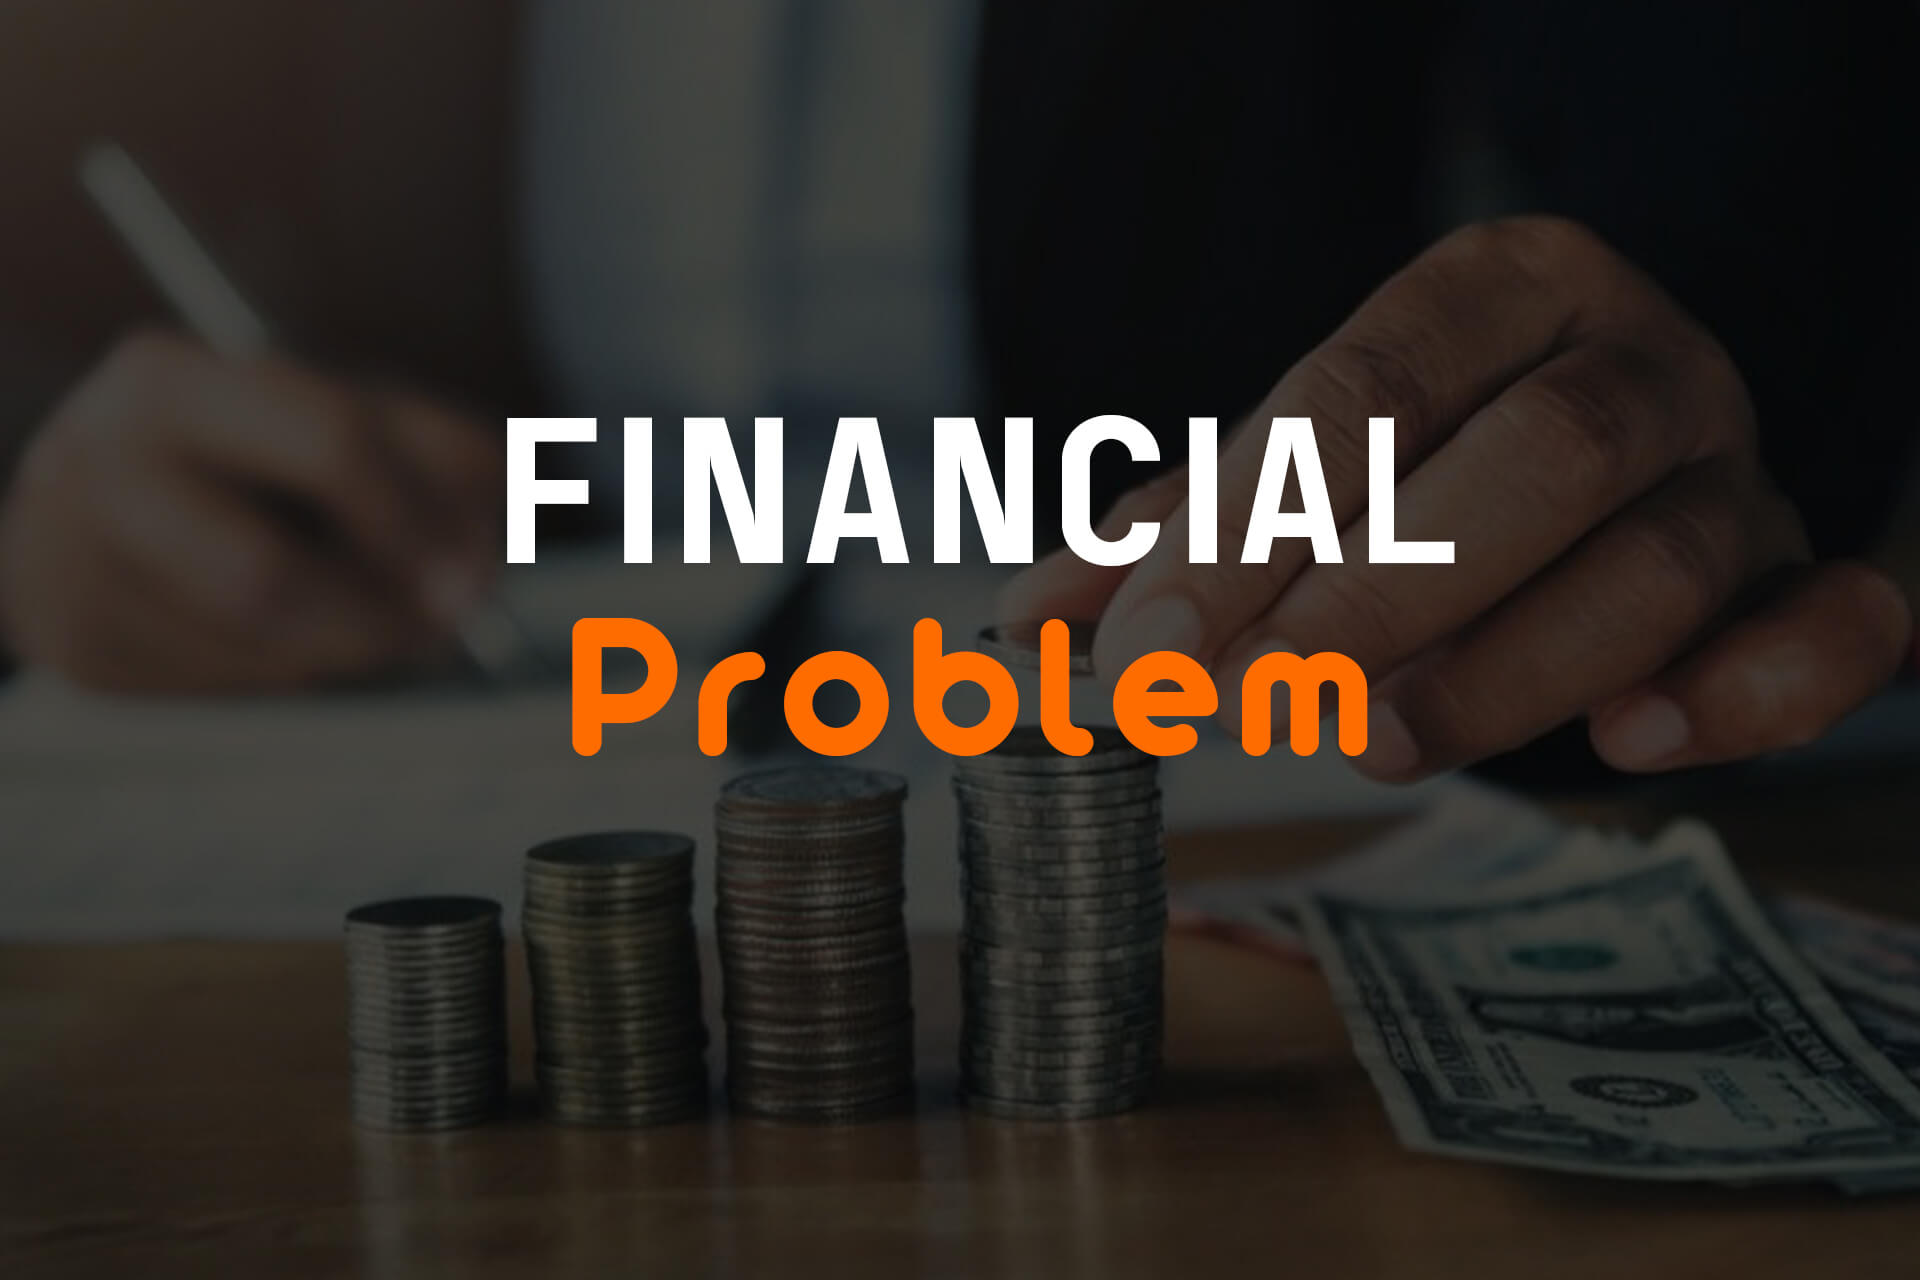 Financial Problem in businesses